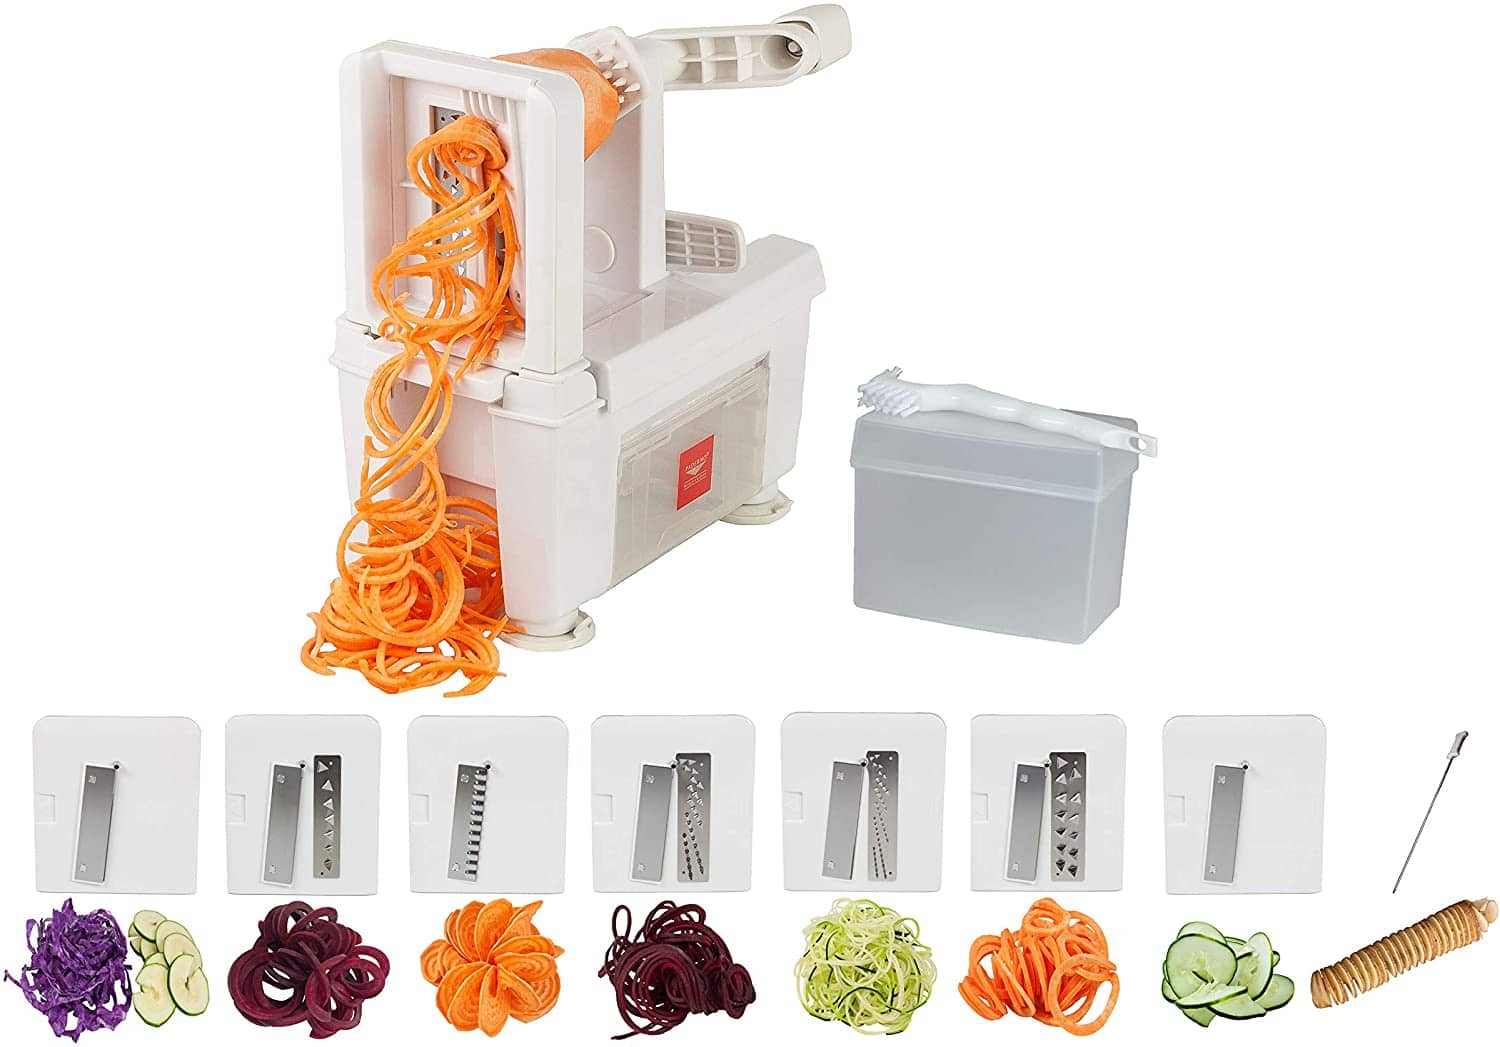 Spiralizer, Paderno World Cuisine 8-Cut Collapsible Folding 7-Blade, White  $3.93